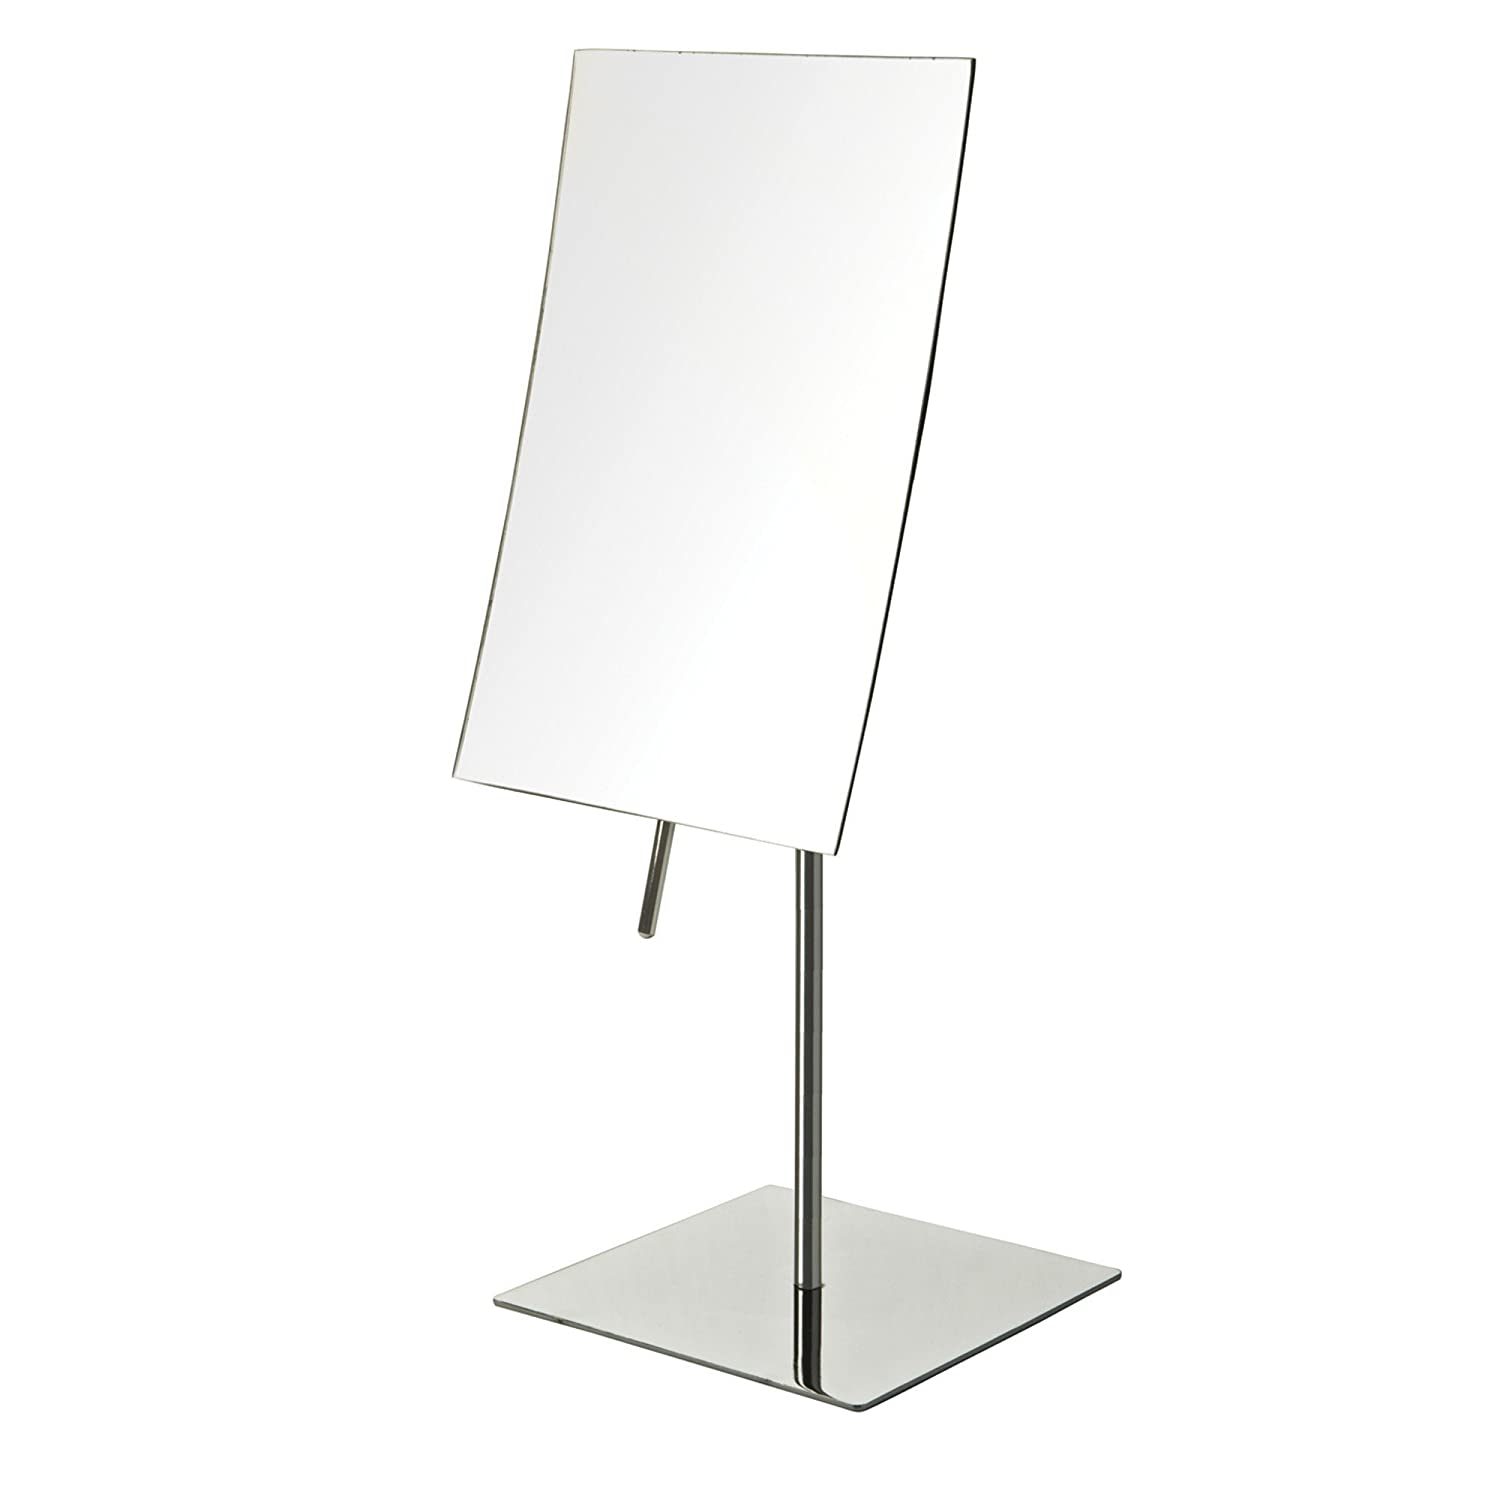 Jerdon JP358C 5-Inch by 8-Inch Rectangular Vanity Mirror with 3x Magnification, Stainless Steel Finish